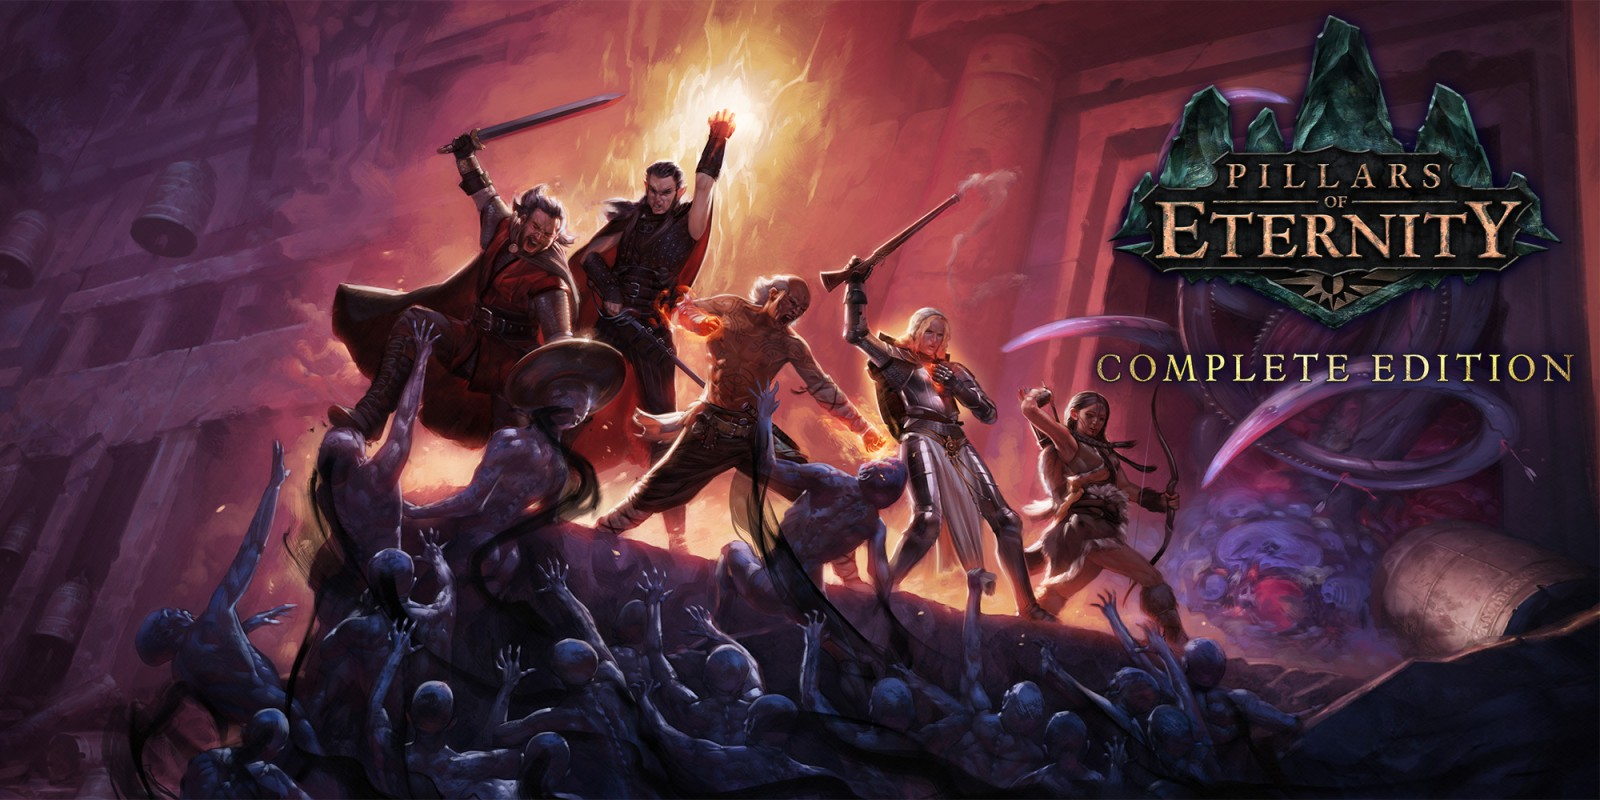 Pillars of Eternity: La Edición Completa